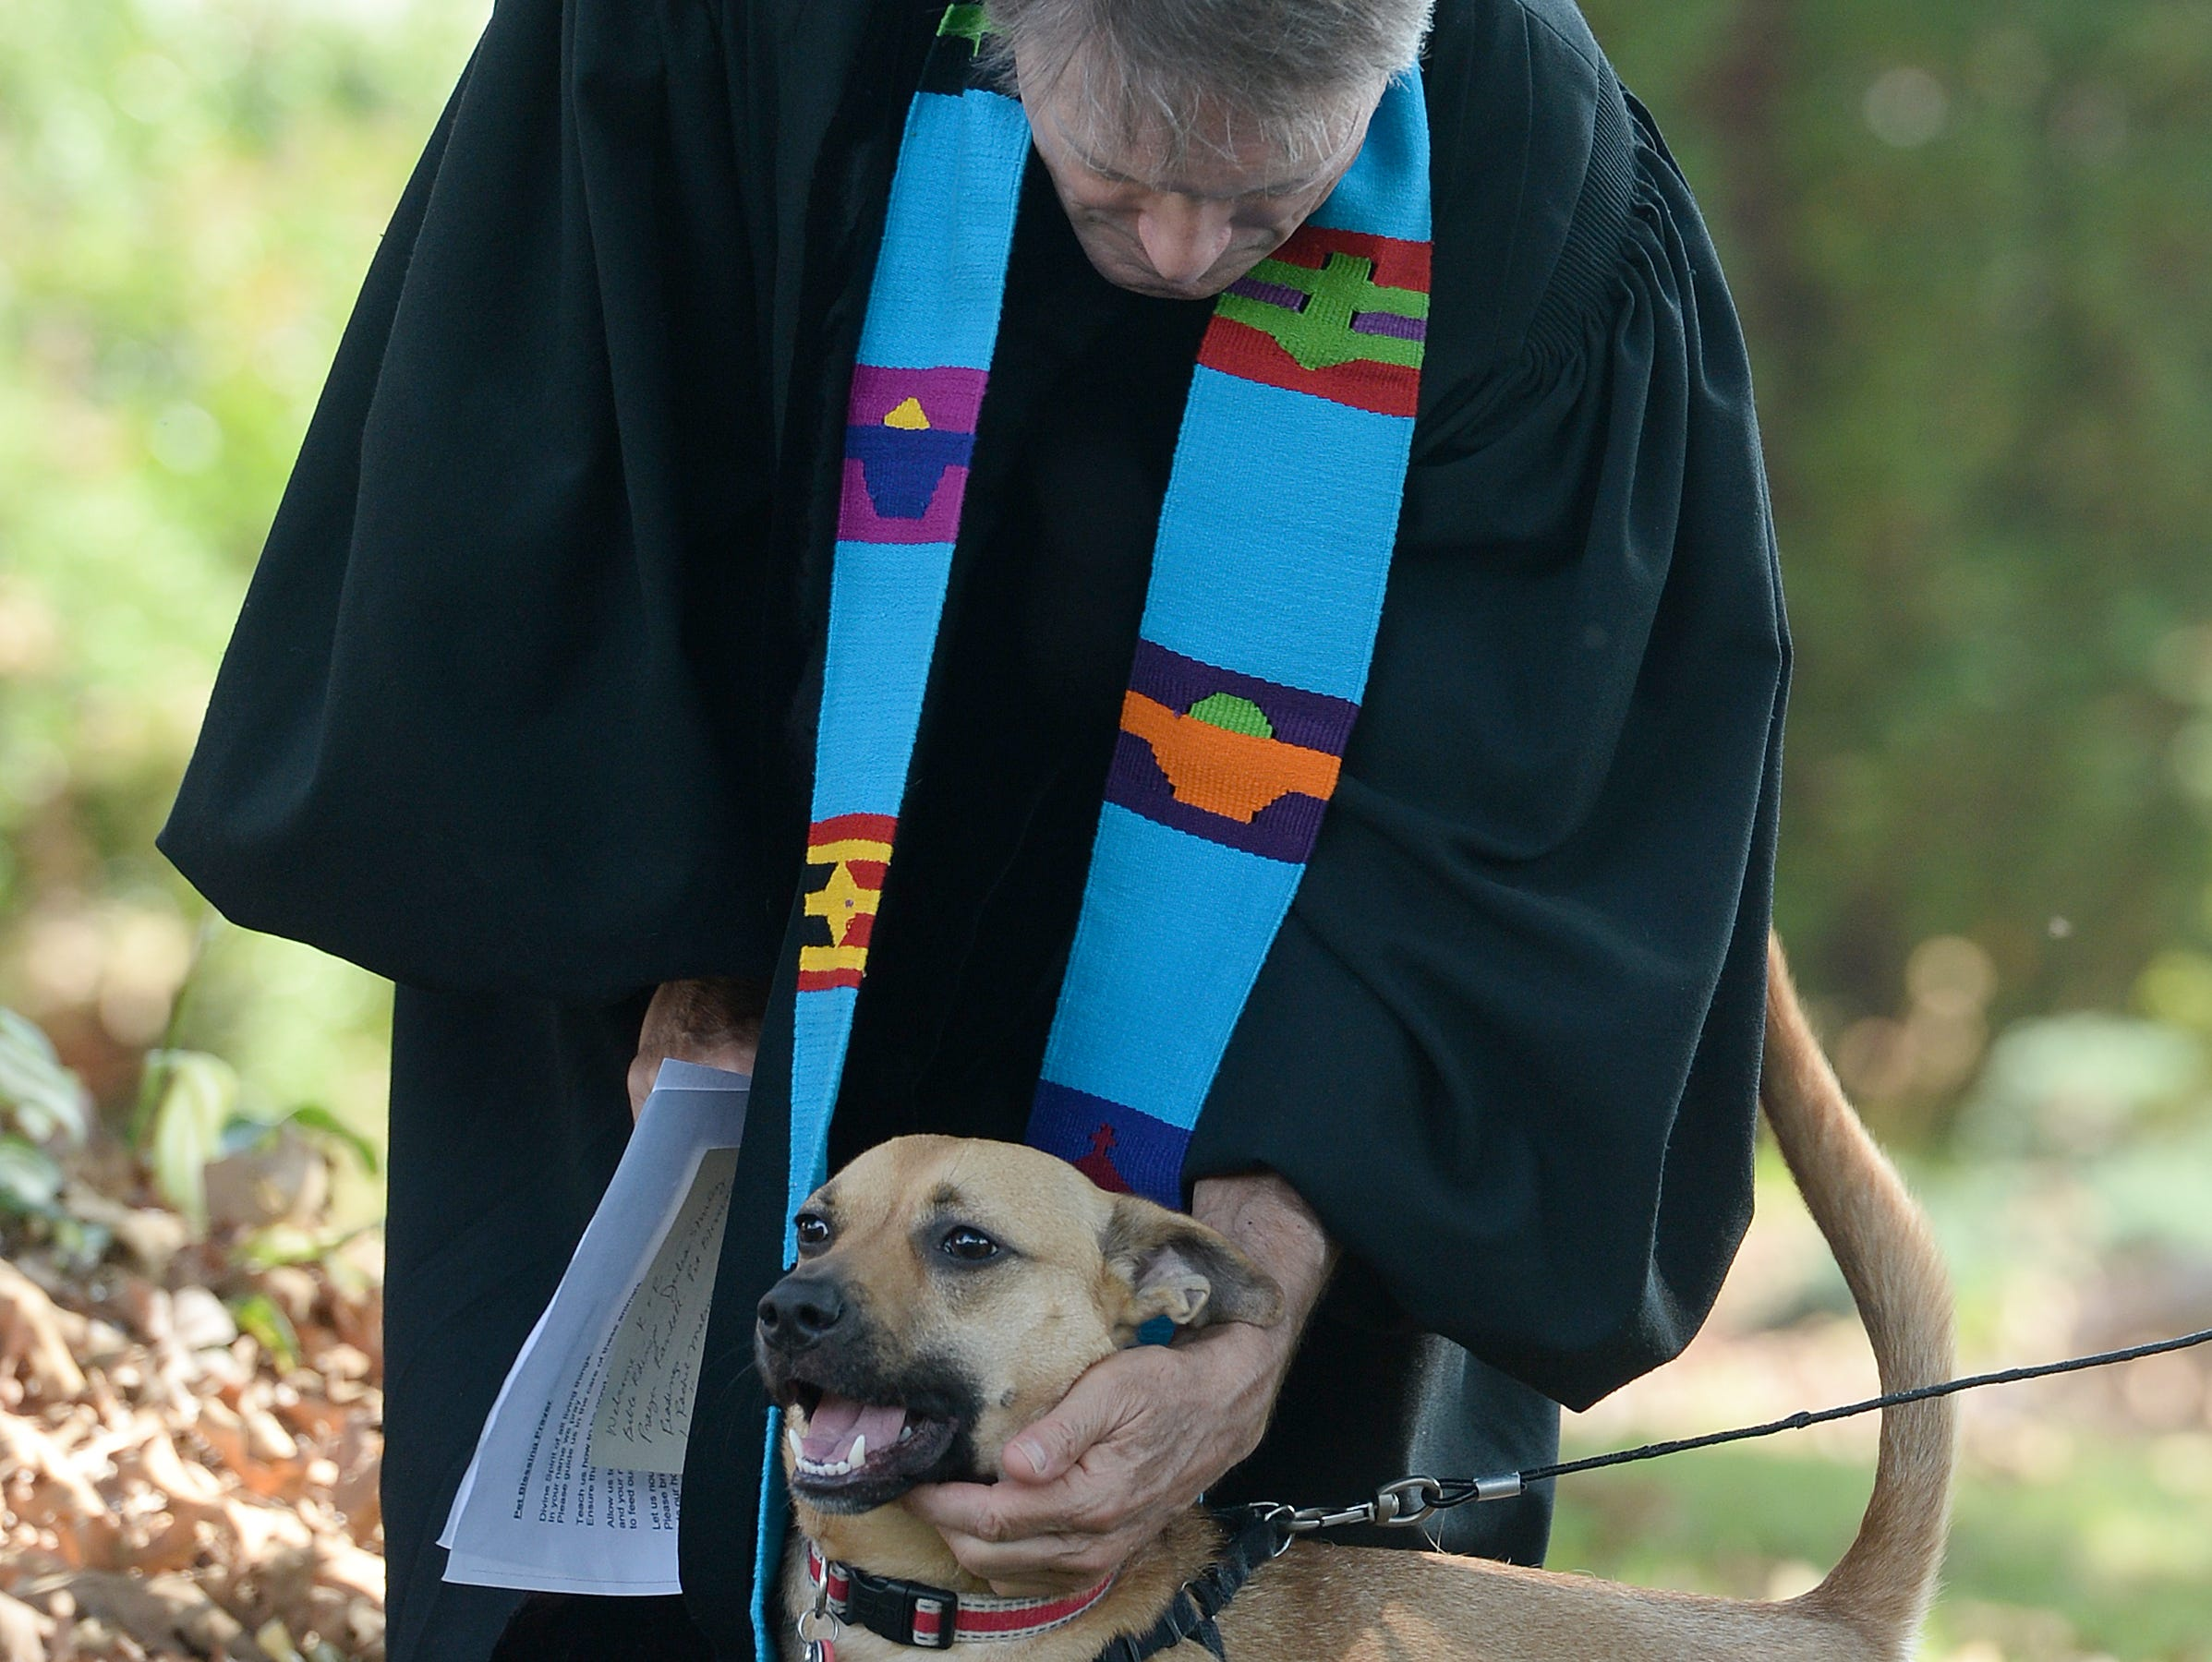 Randall Boggs calms his own dog, Marley, during the 10th Annual Blessing of the Pets at Mills River Presbyterian Church on Sept. 8, 2018.